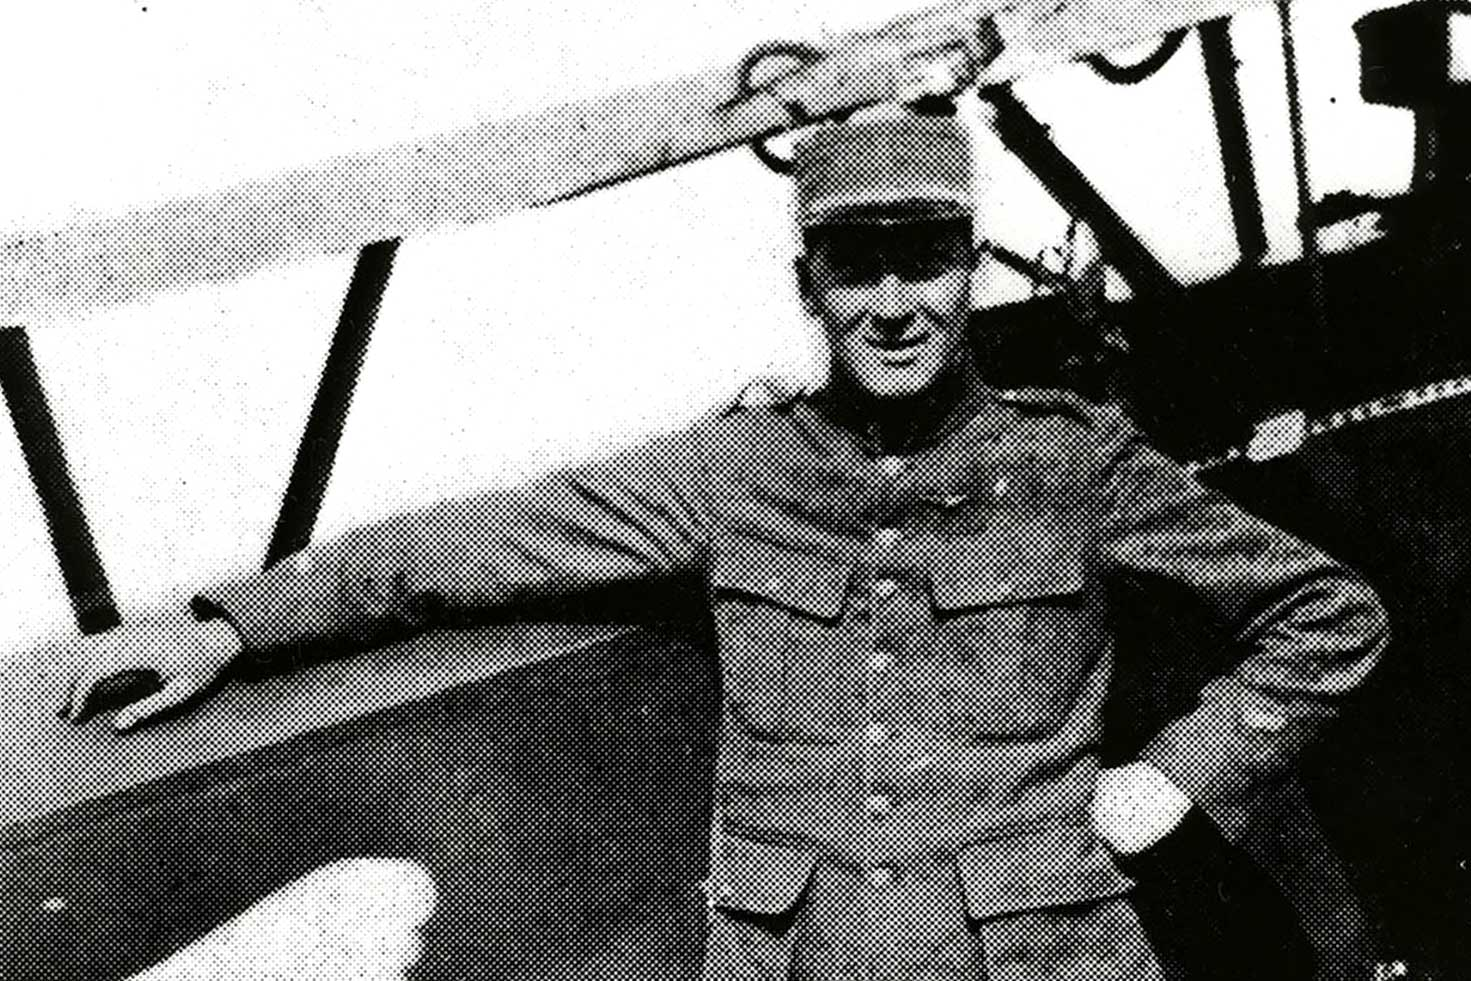 James McConnell, who flew for France, was the last American pilot to be killed in World War I before the U.S. joined the fighting. (Photo courtesy of UVA Library)